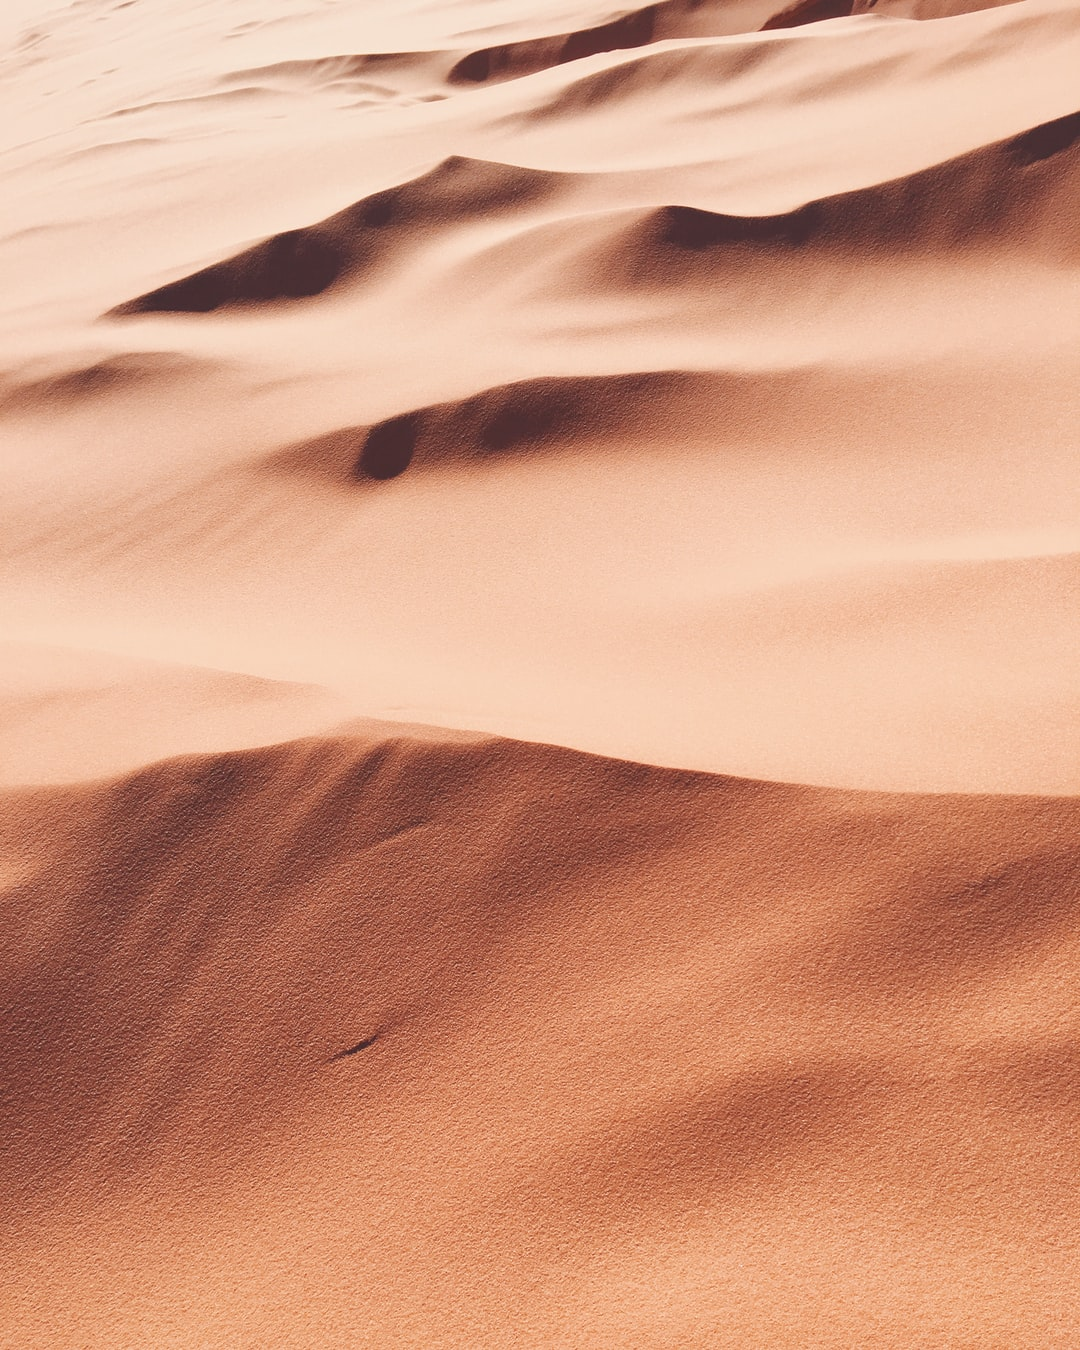 This is a cropped shot of some sand at the Coral Pink Sand Dunes State Park in Utah. However, it could look like large sand dunes from an aerial view also. Whether near or far, I love the softness of the texture and the crisp lines that could be changed instantly by a slight breeze. It's a magical, playful, pink place.